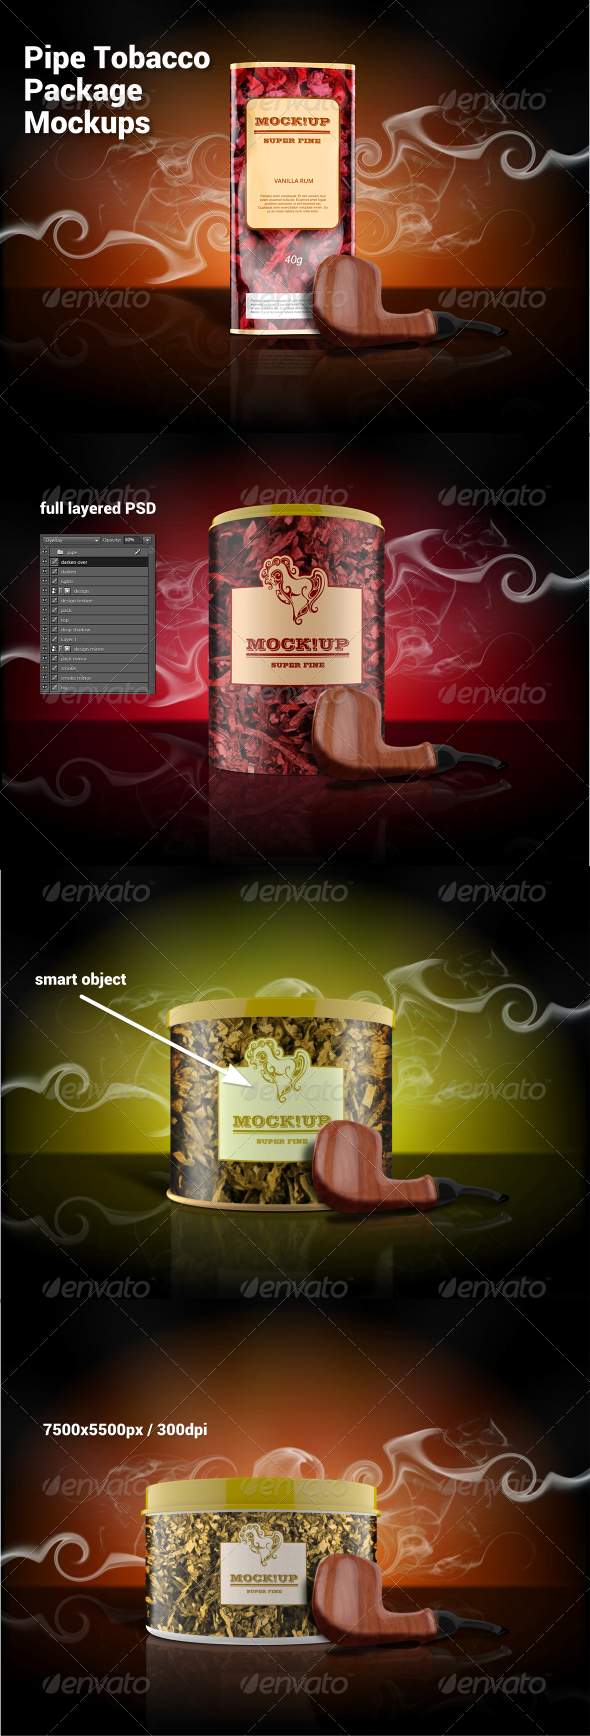 Pipe Tobacco Package Mockups